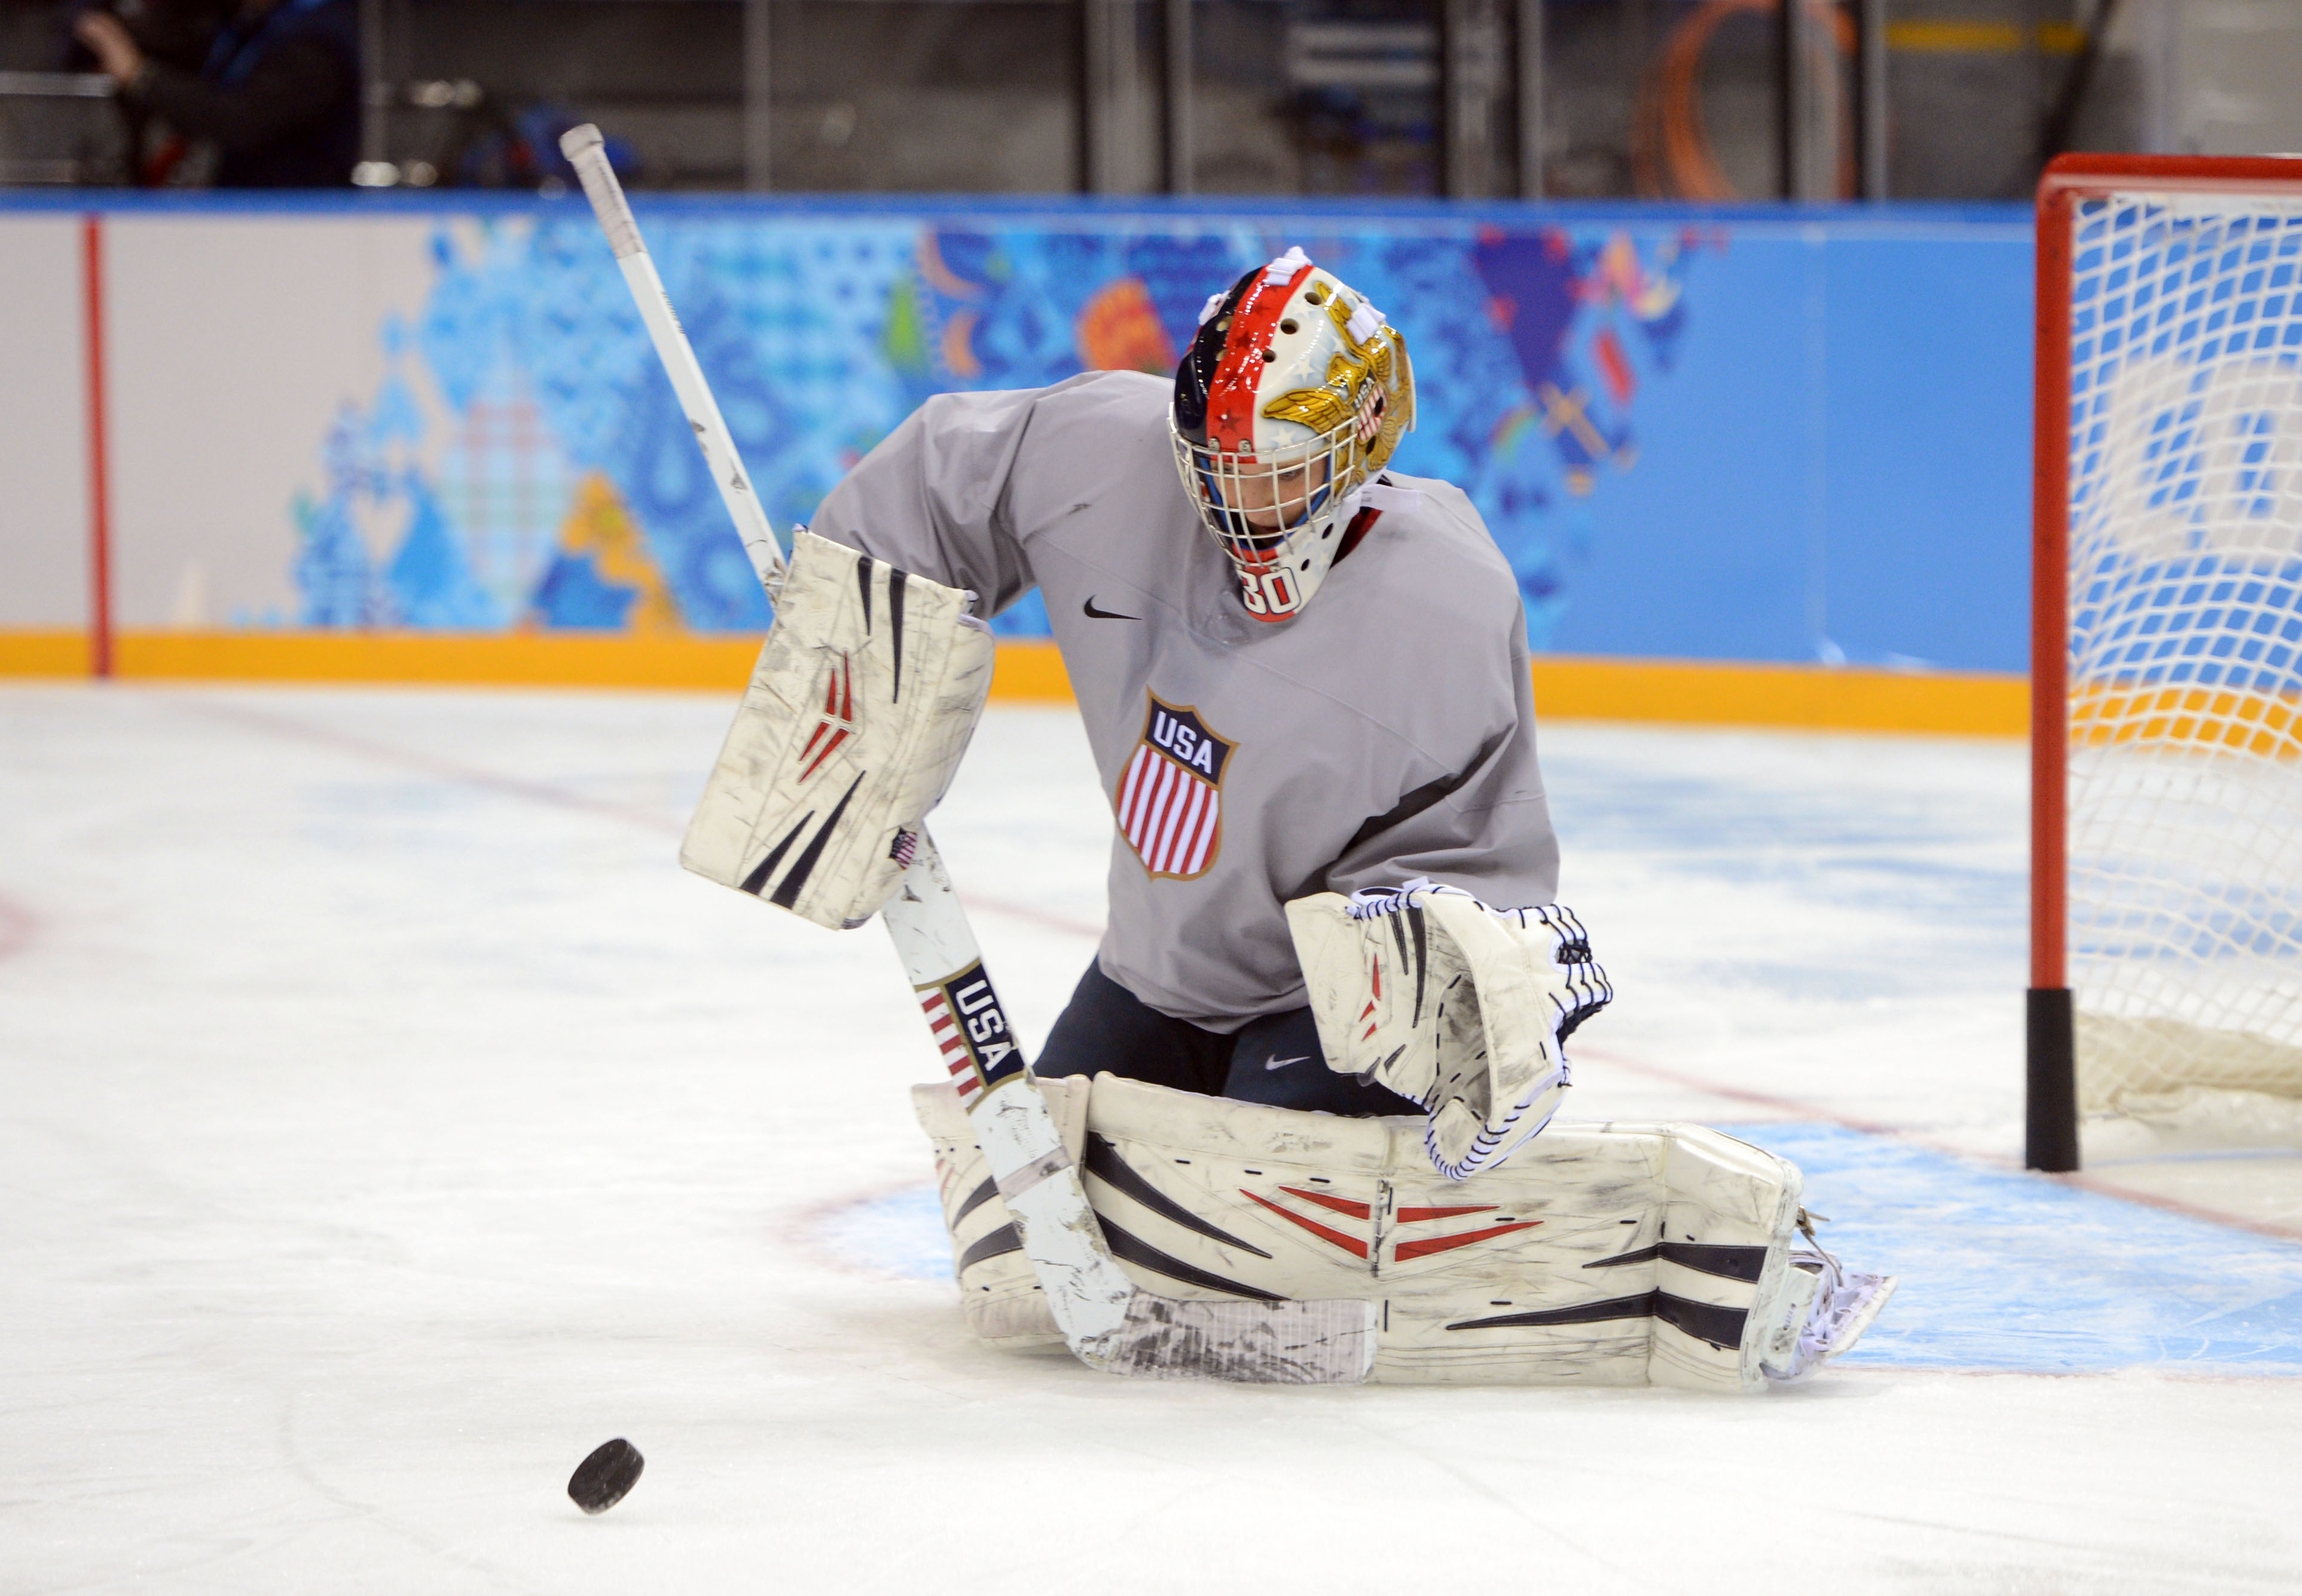 USA goalkeeper Molly Schaus (30) during a practice session in preparation for the 2014 Sochi Olympic Winter Games at Shayba Arena. (Jayne Kamin-Oncea, USA TODAY Sports)